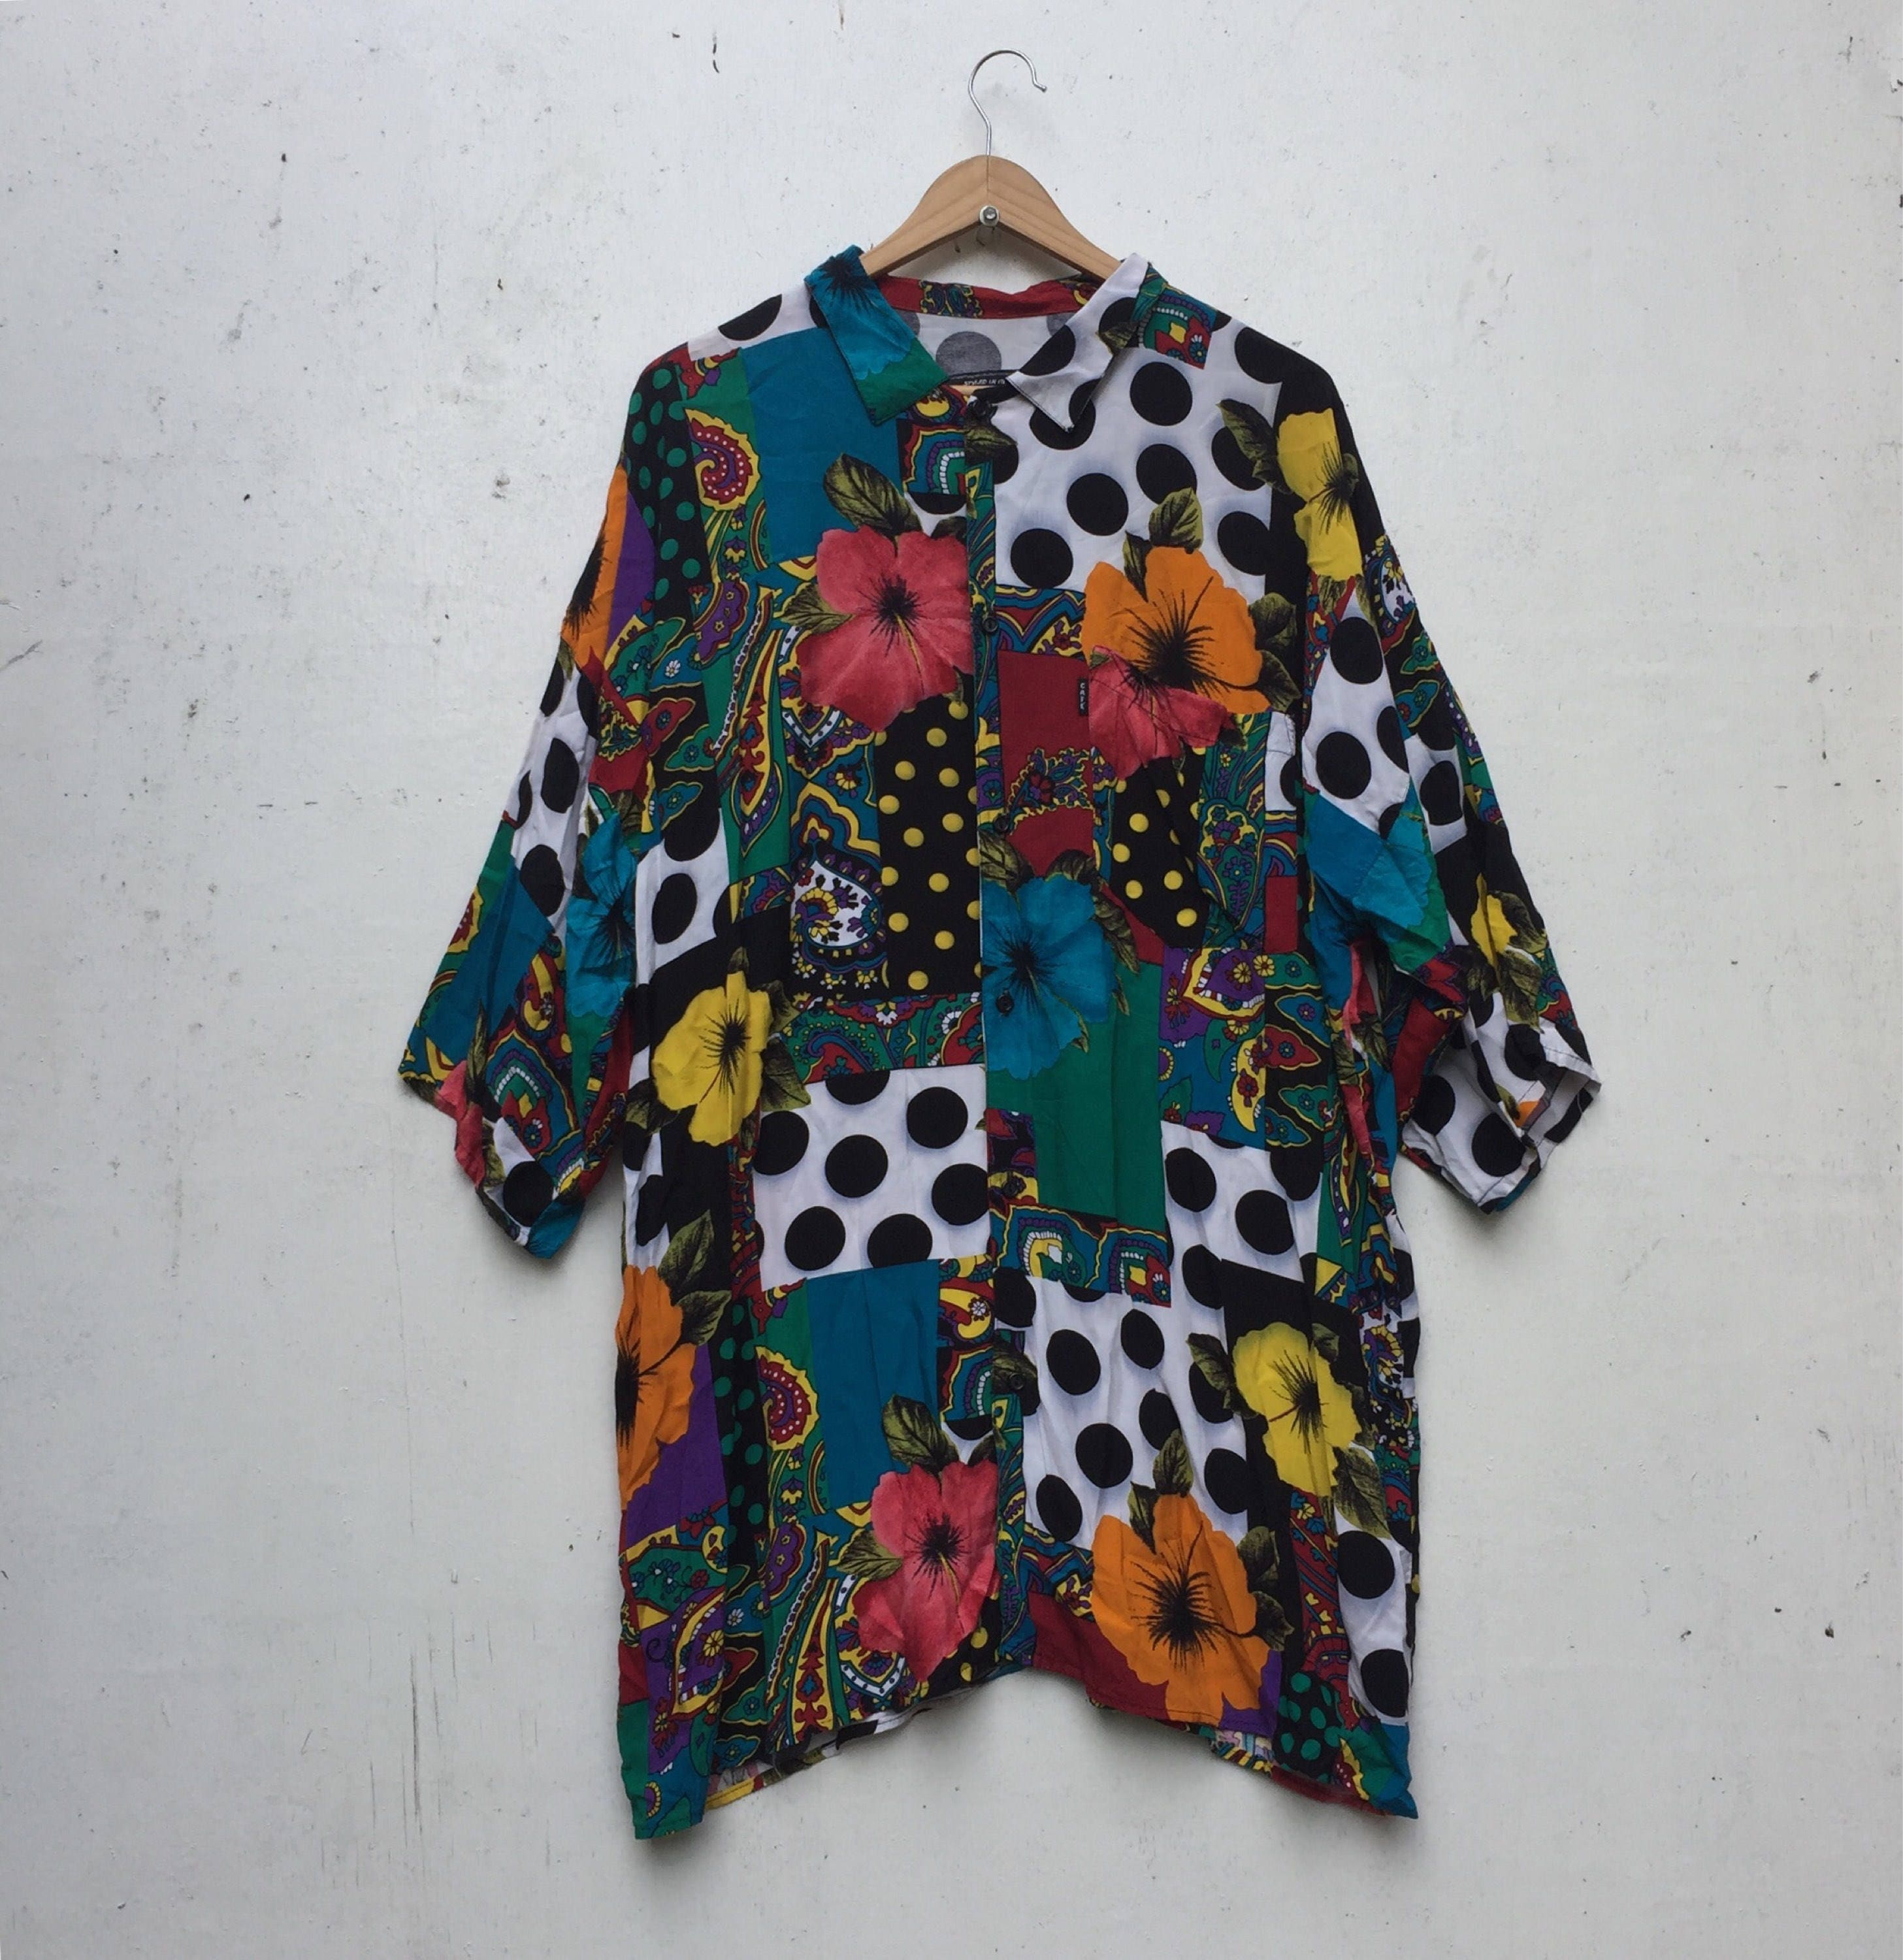 Vintage 90 s CAFE Silk Floral Multicolor Print Button Shirt Medium  Oversized  644 11538b346